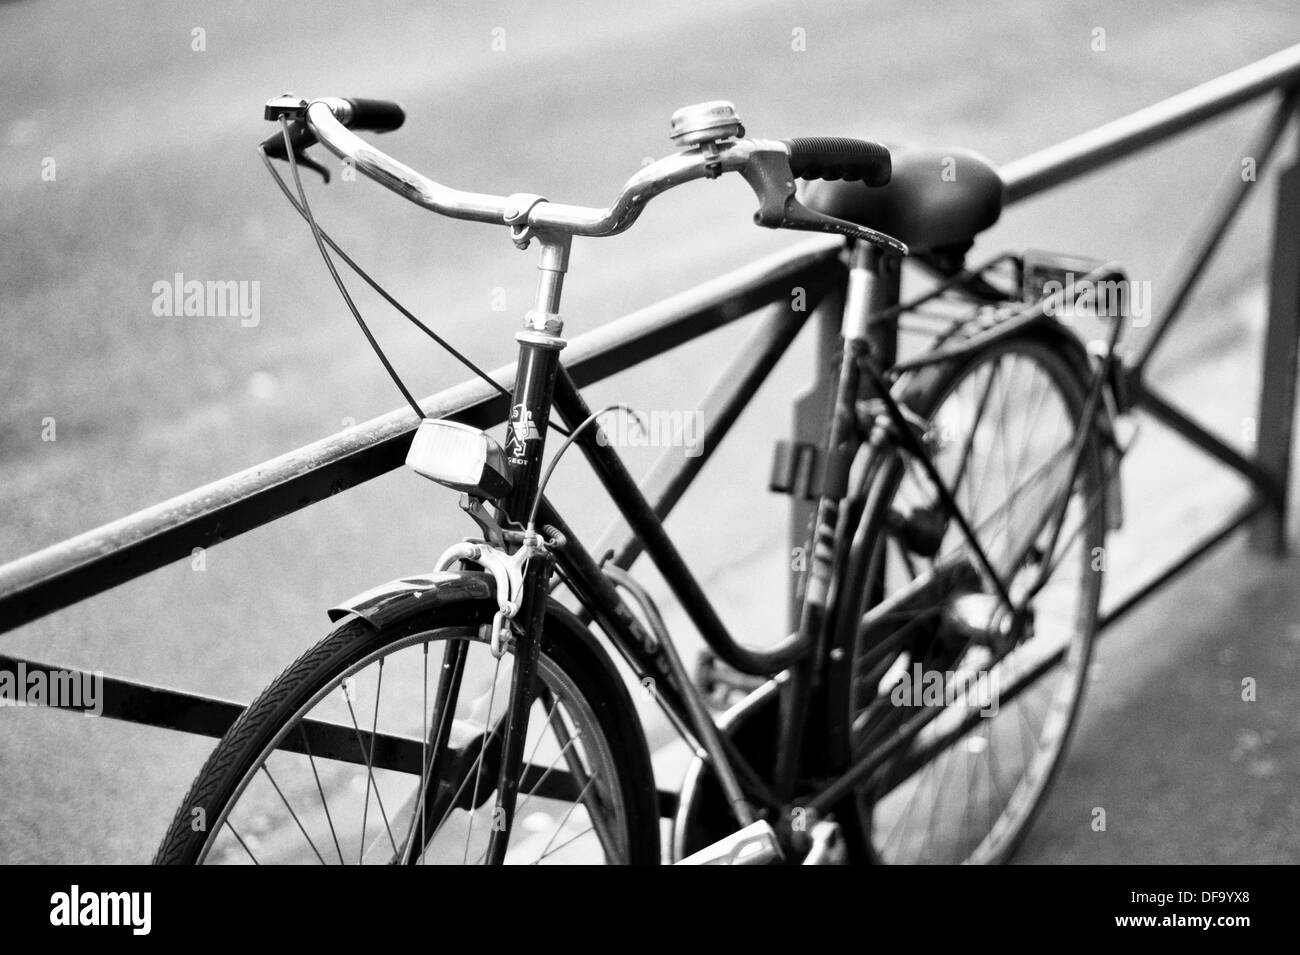 Old style bicycle locked to a railing in Paris France - Stock Image